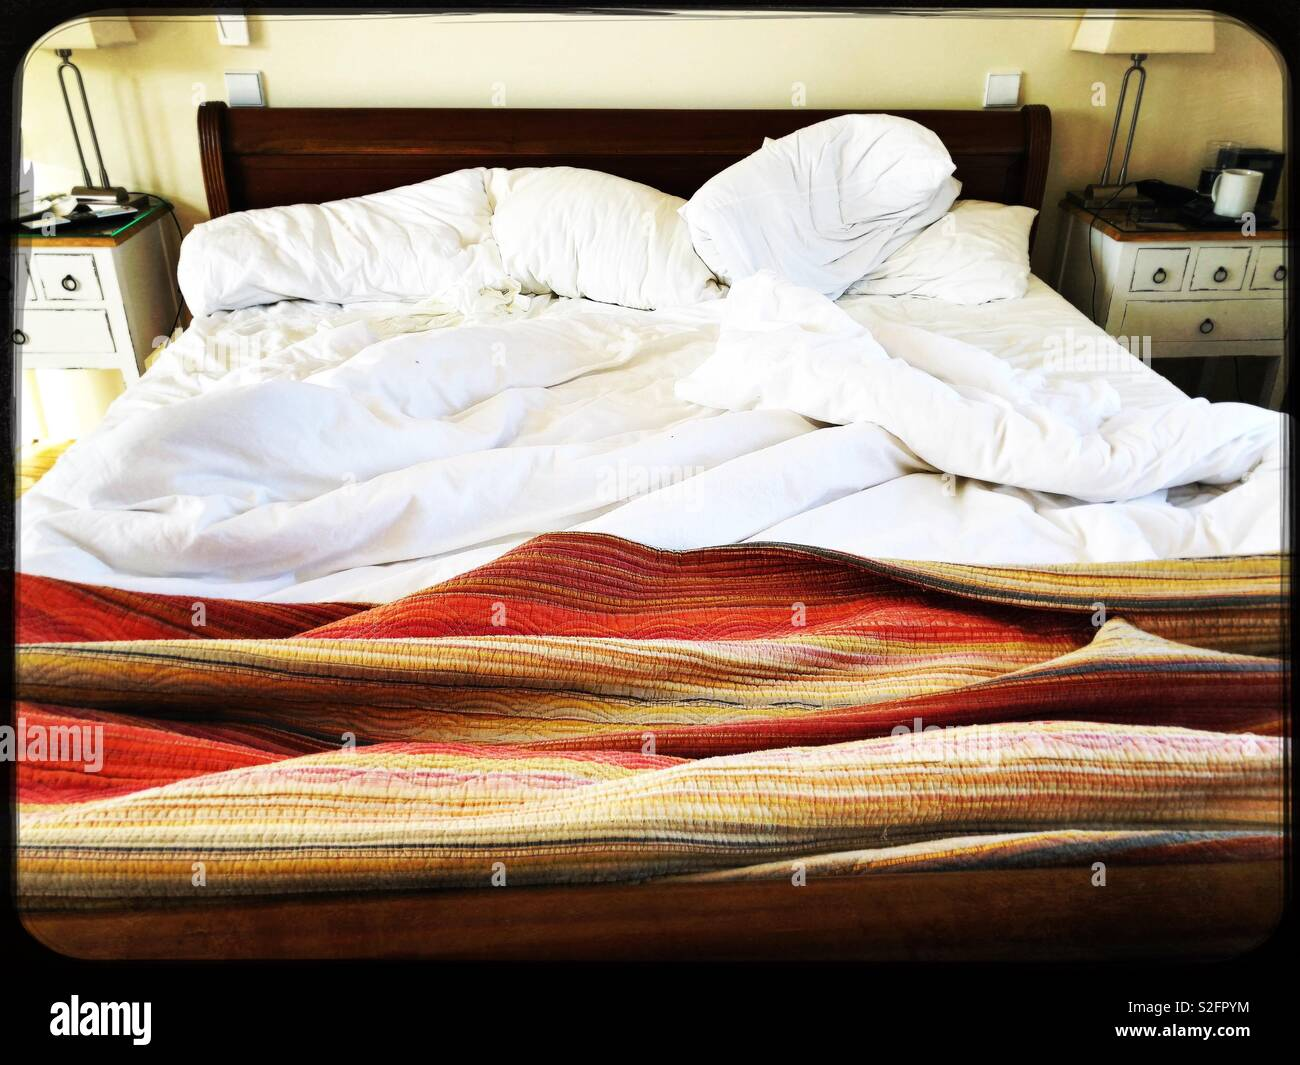 Messy bed in the morning - Stock Image